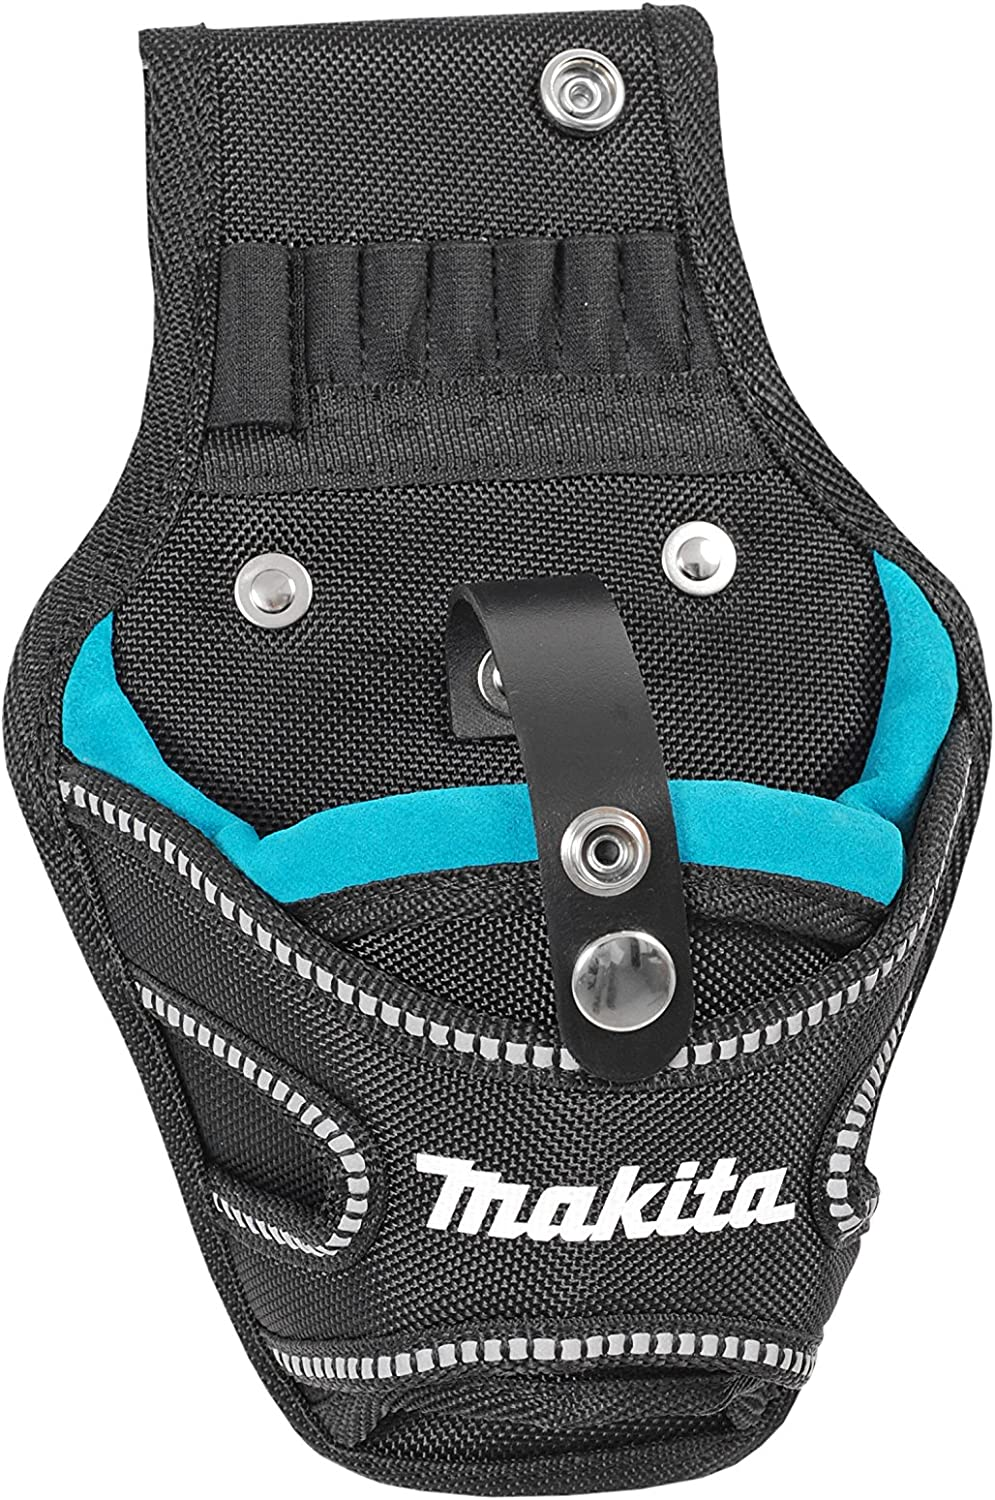 MAKITA Left Right Handed Universal Cordless Impact Driver Holster 66-118 NEW noo